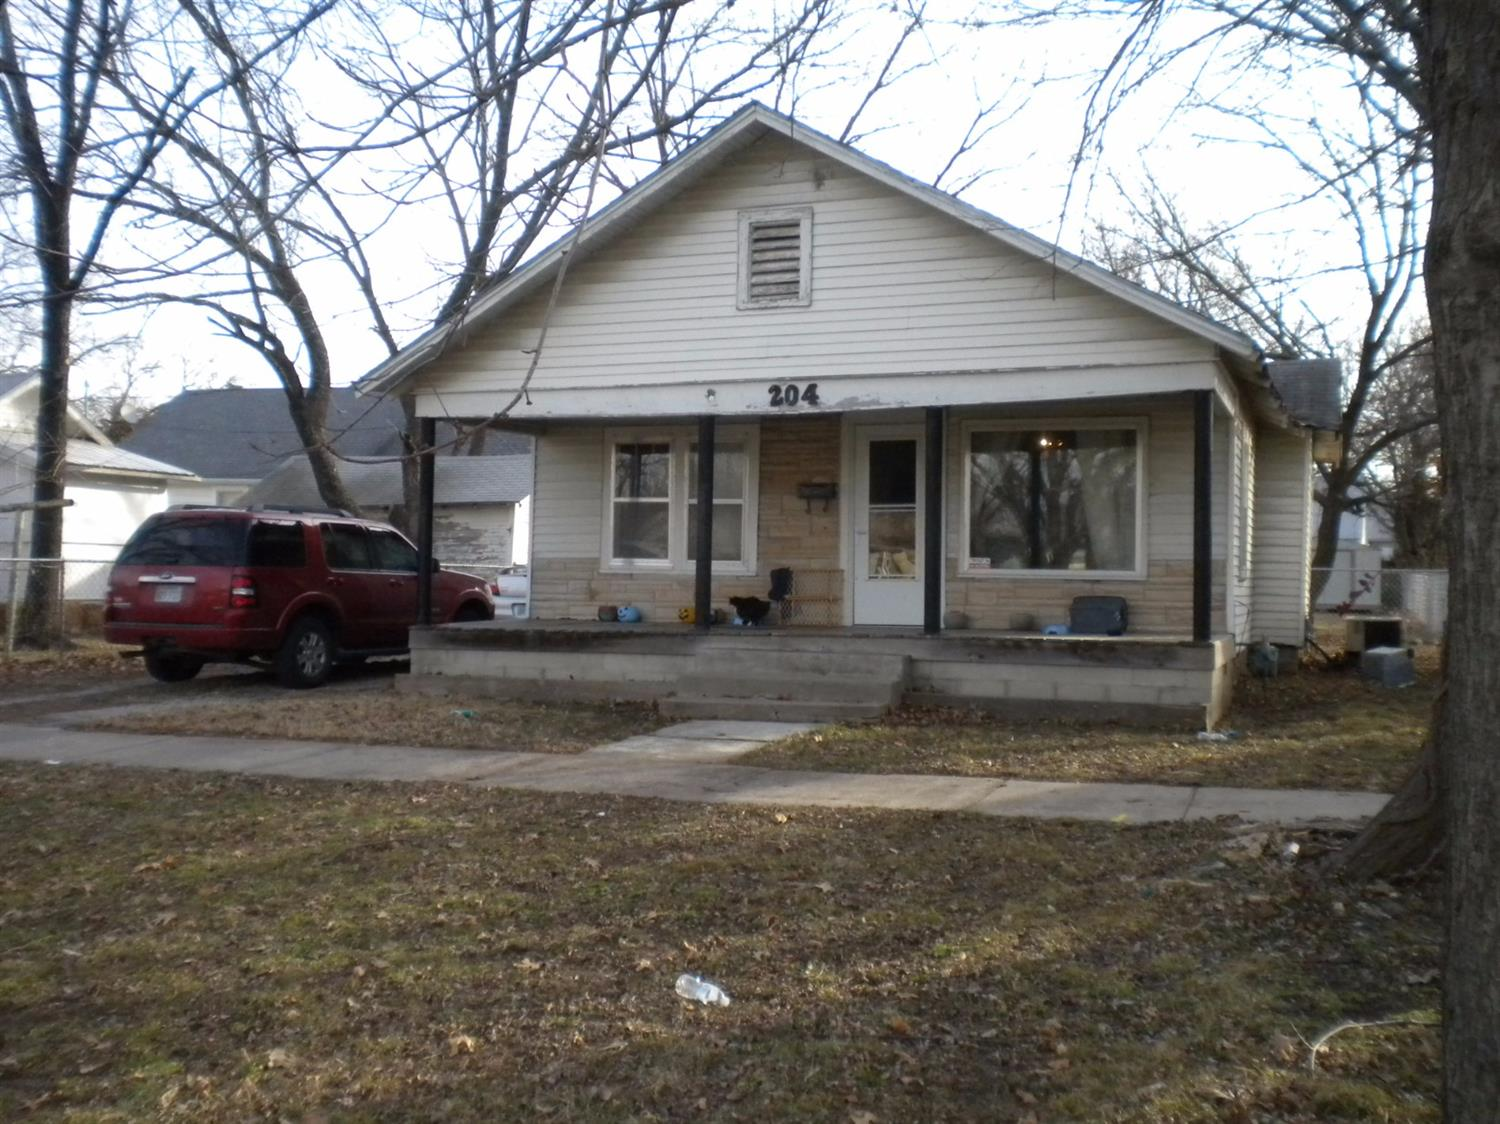 204 S 12th Street, Independence, KS 67301